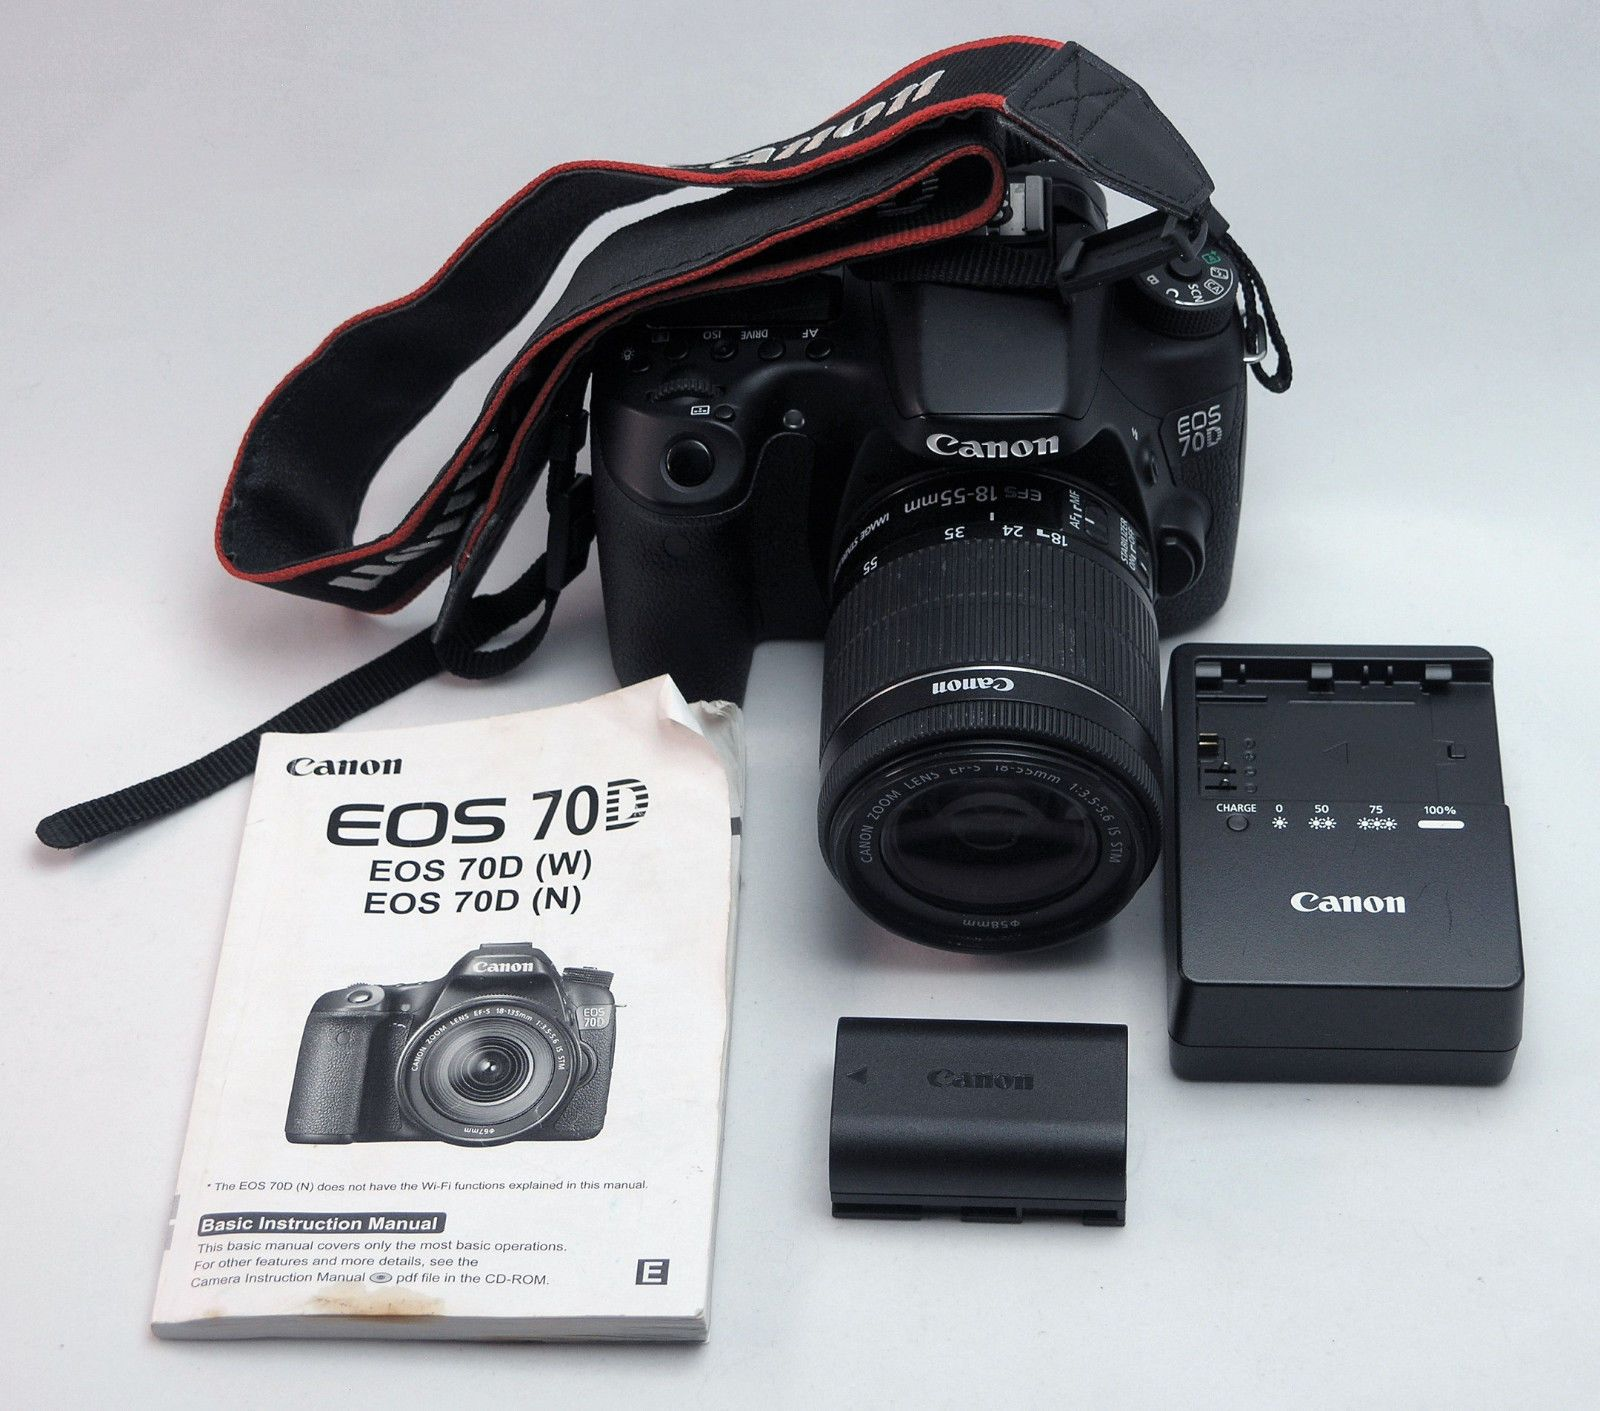 Canon EOS 70D (W) WiFi Digital SLR Camera with 18-55MM Lens